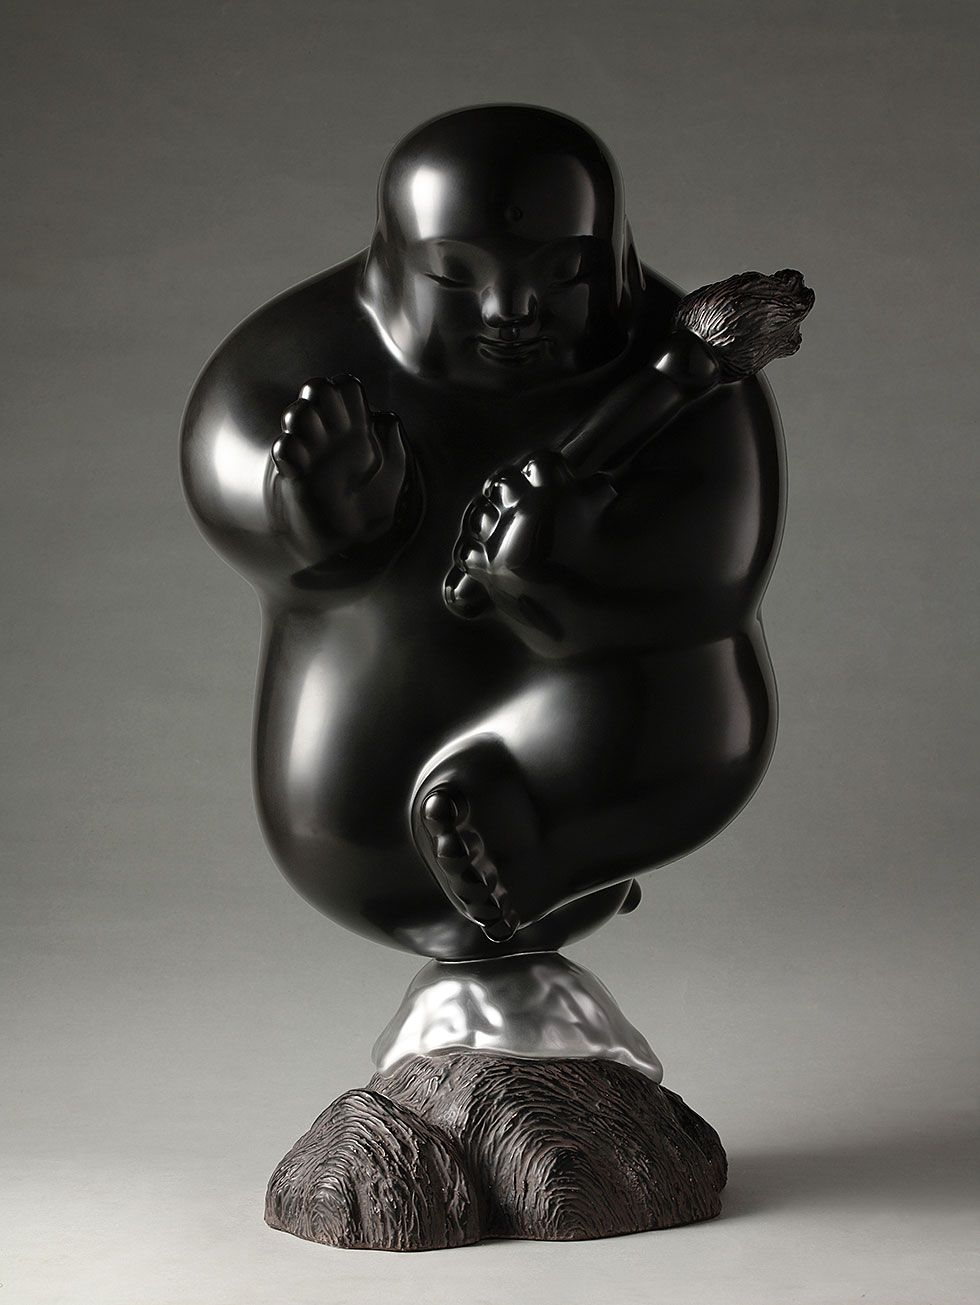 Contemporary Art From Southeast Asia Celebrated in Japan  |Contemporary Sculpture Asia